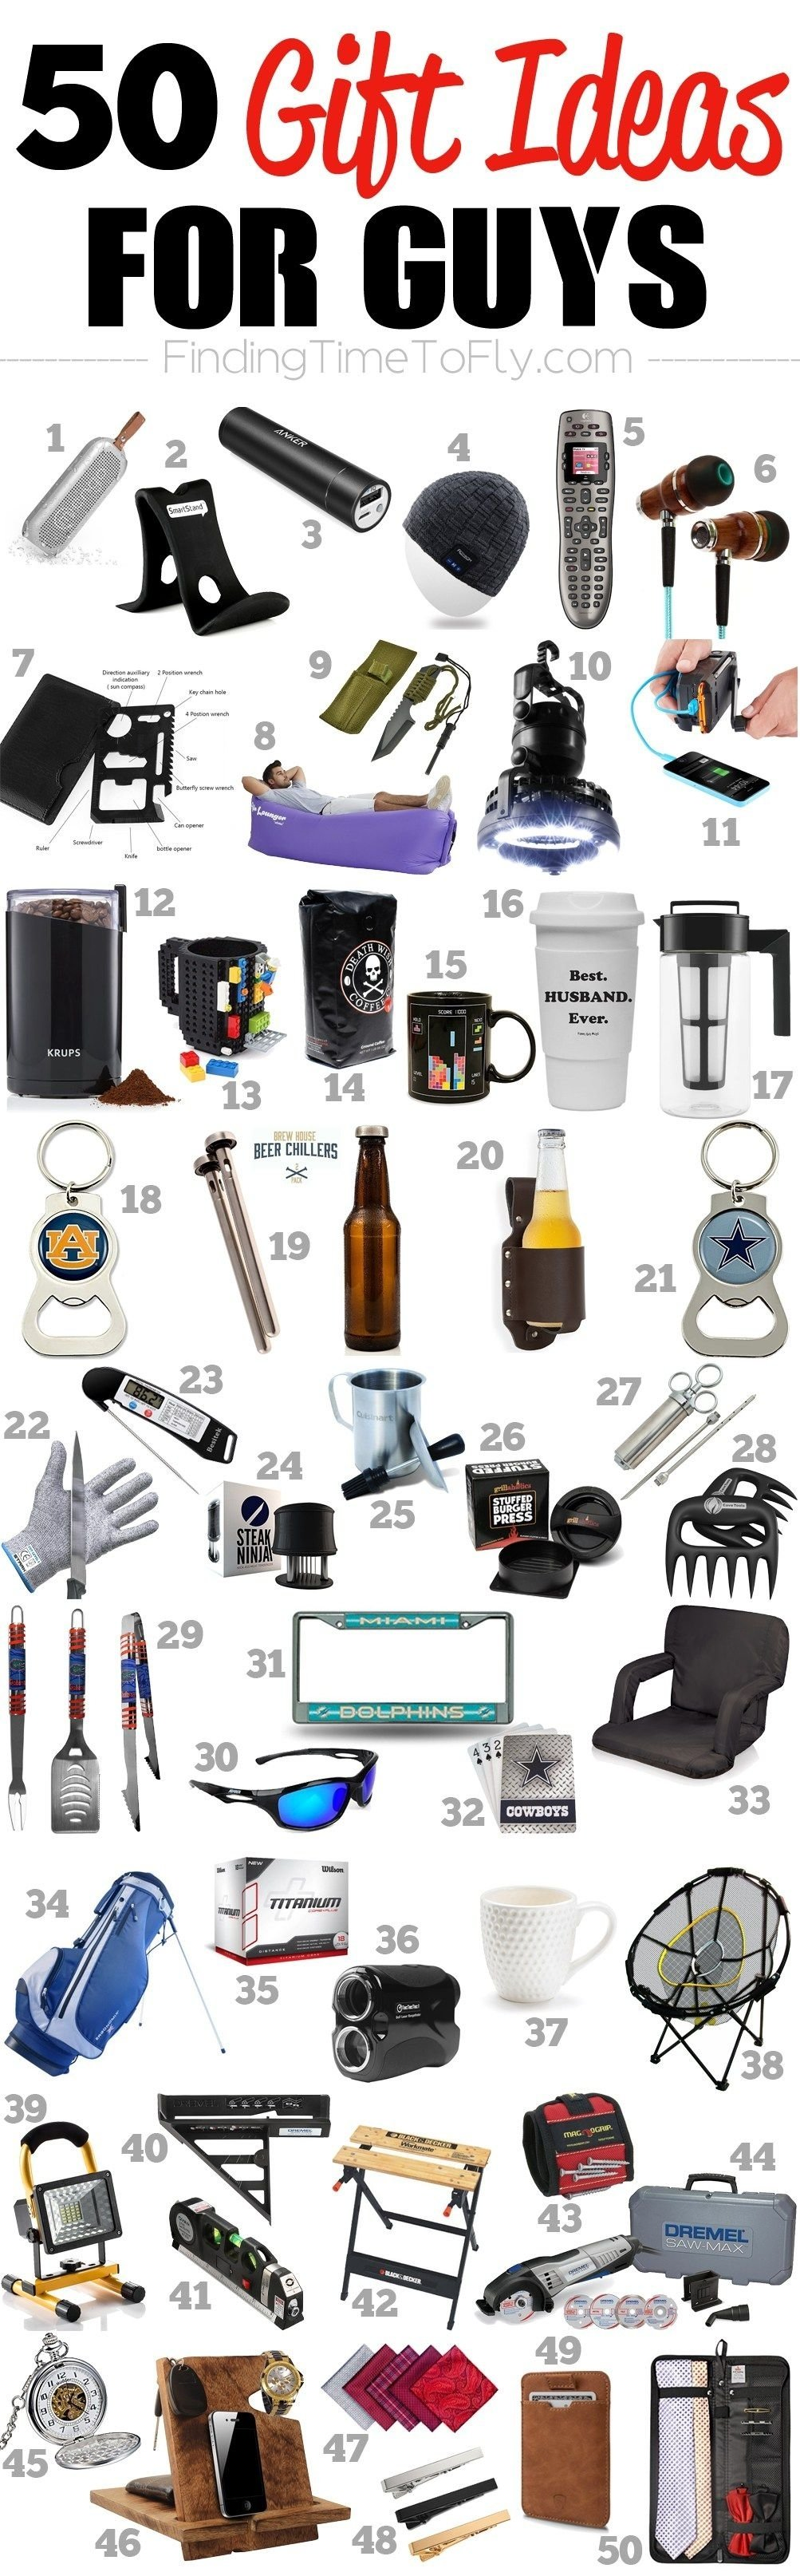 10 Most Popular Christmas Gift Idea For Men 50 gifts for guys for every occasion outdoor gear christmas gifts 6 2020